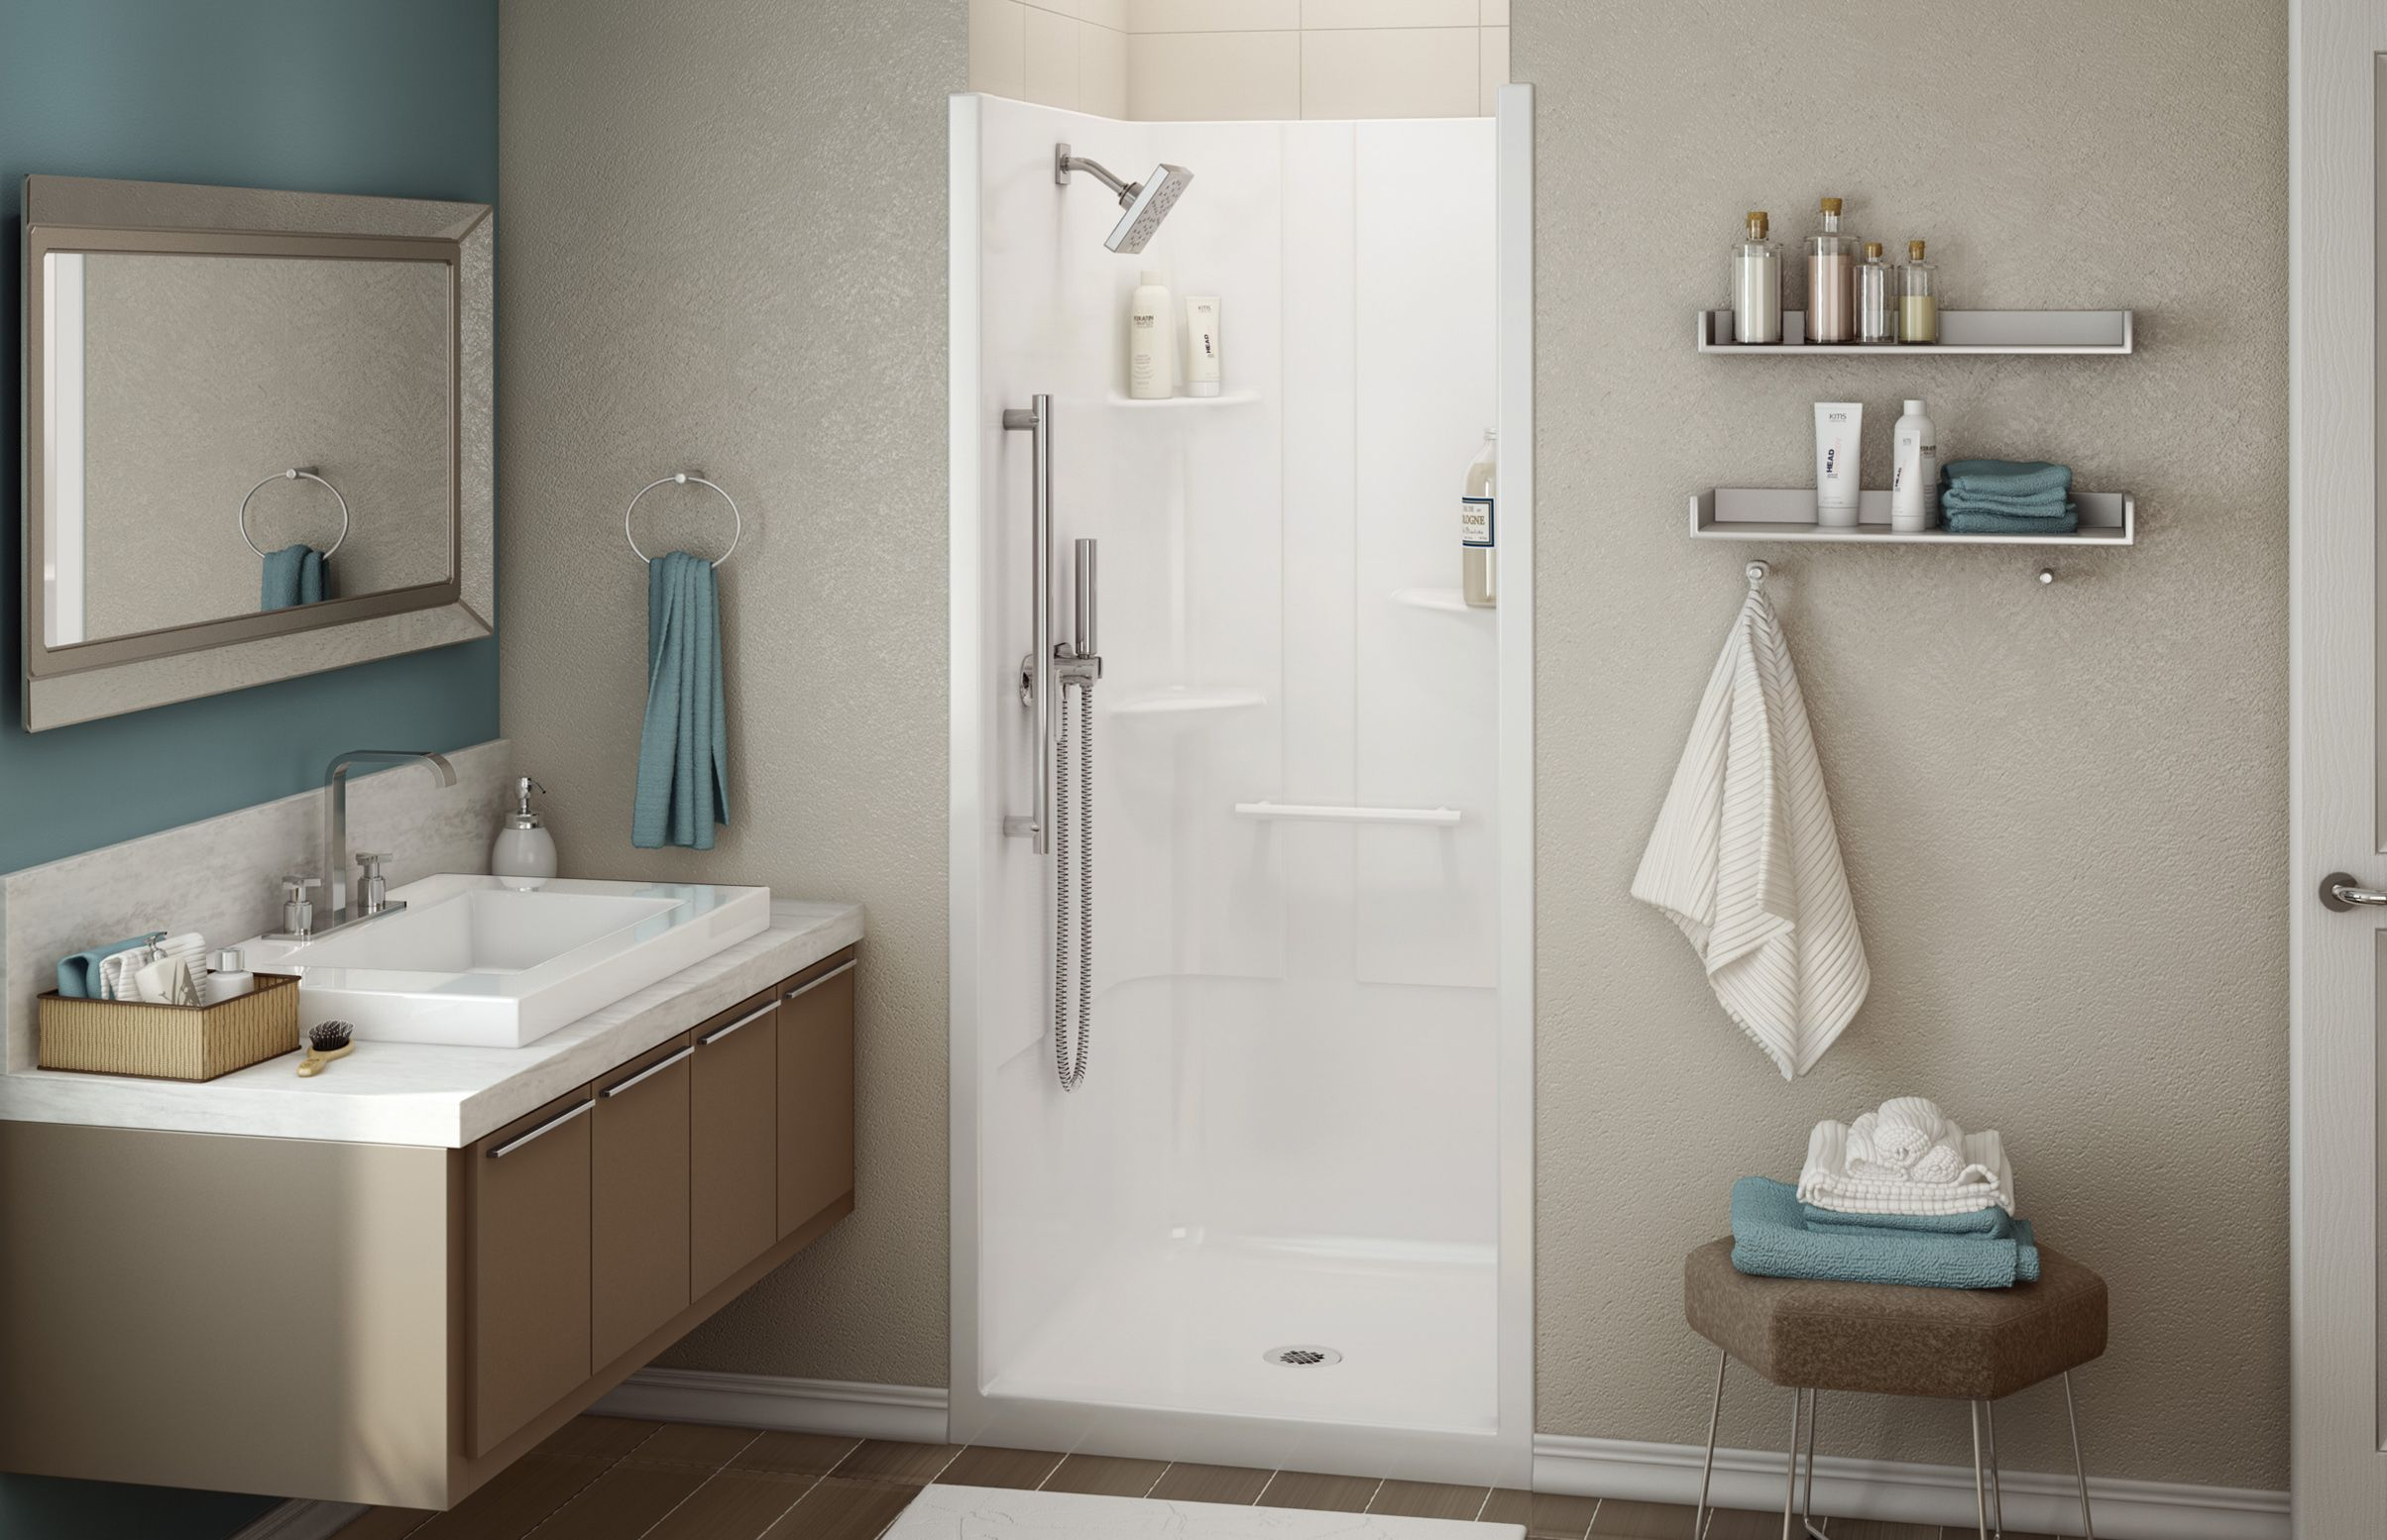 ALLIA SH-3636 Alcove Showers - MAAX Professional? | MAAX | Pinterest ...